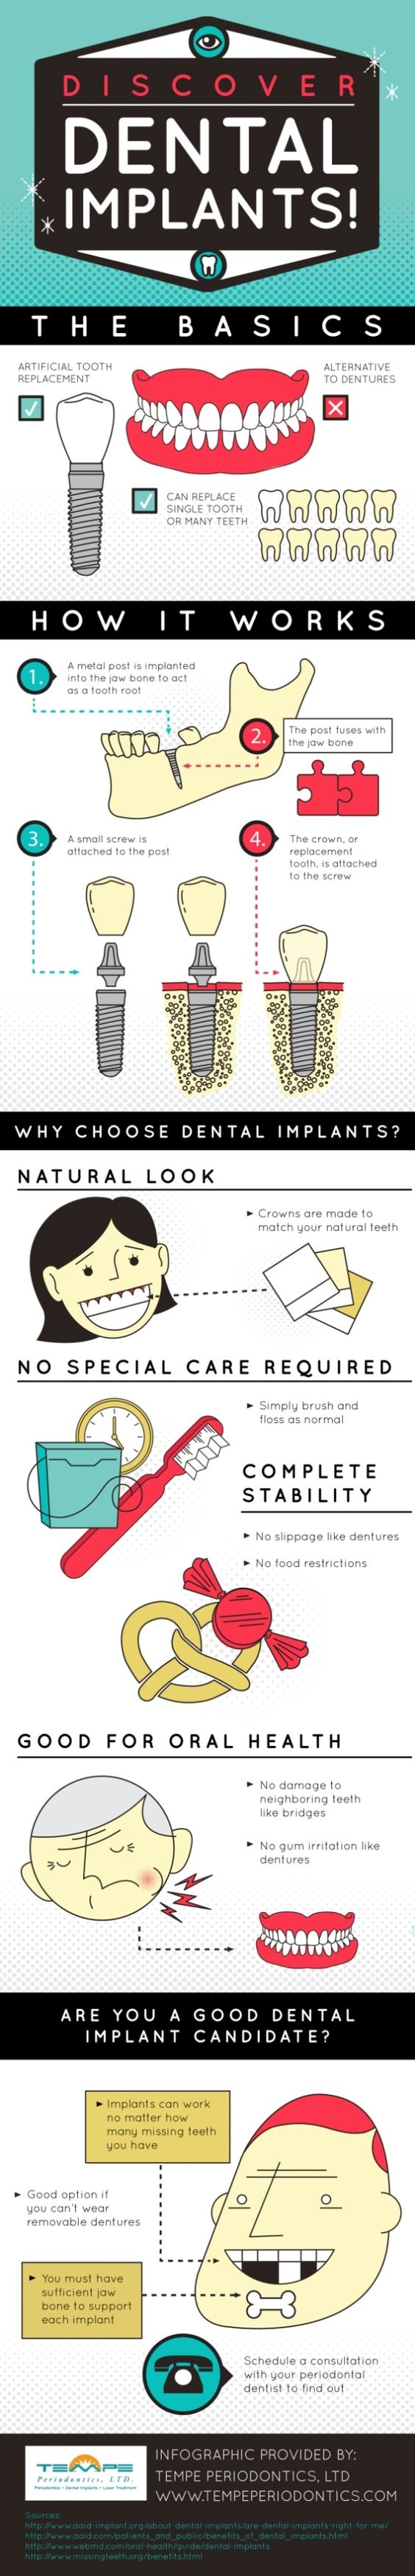 discover dental implants